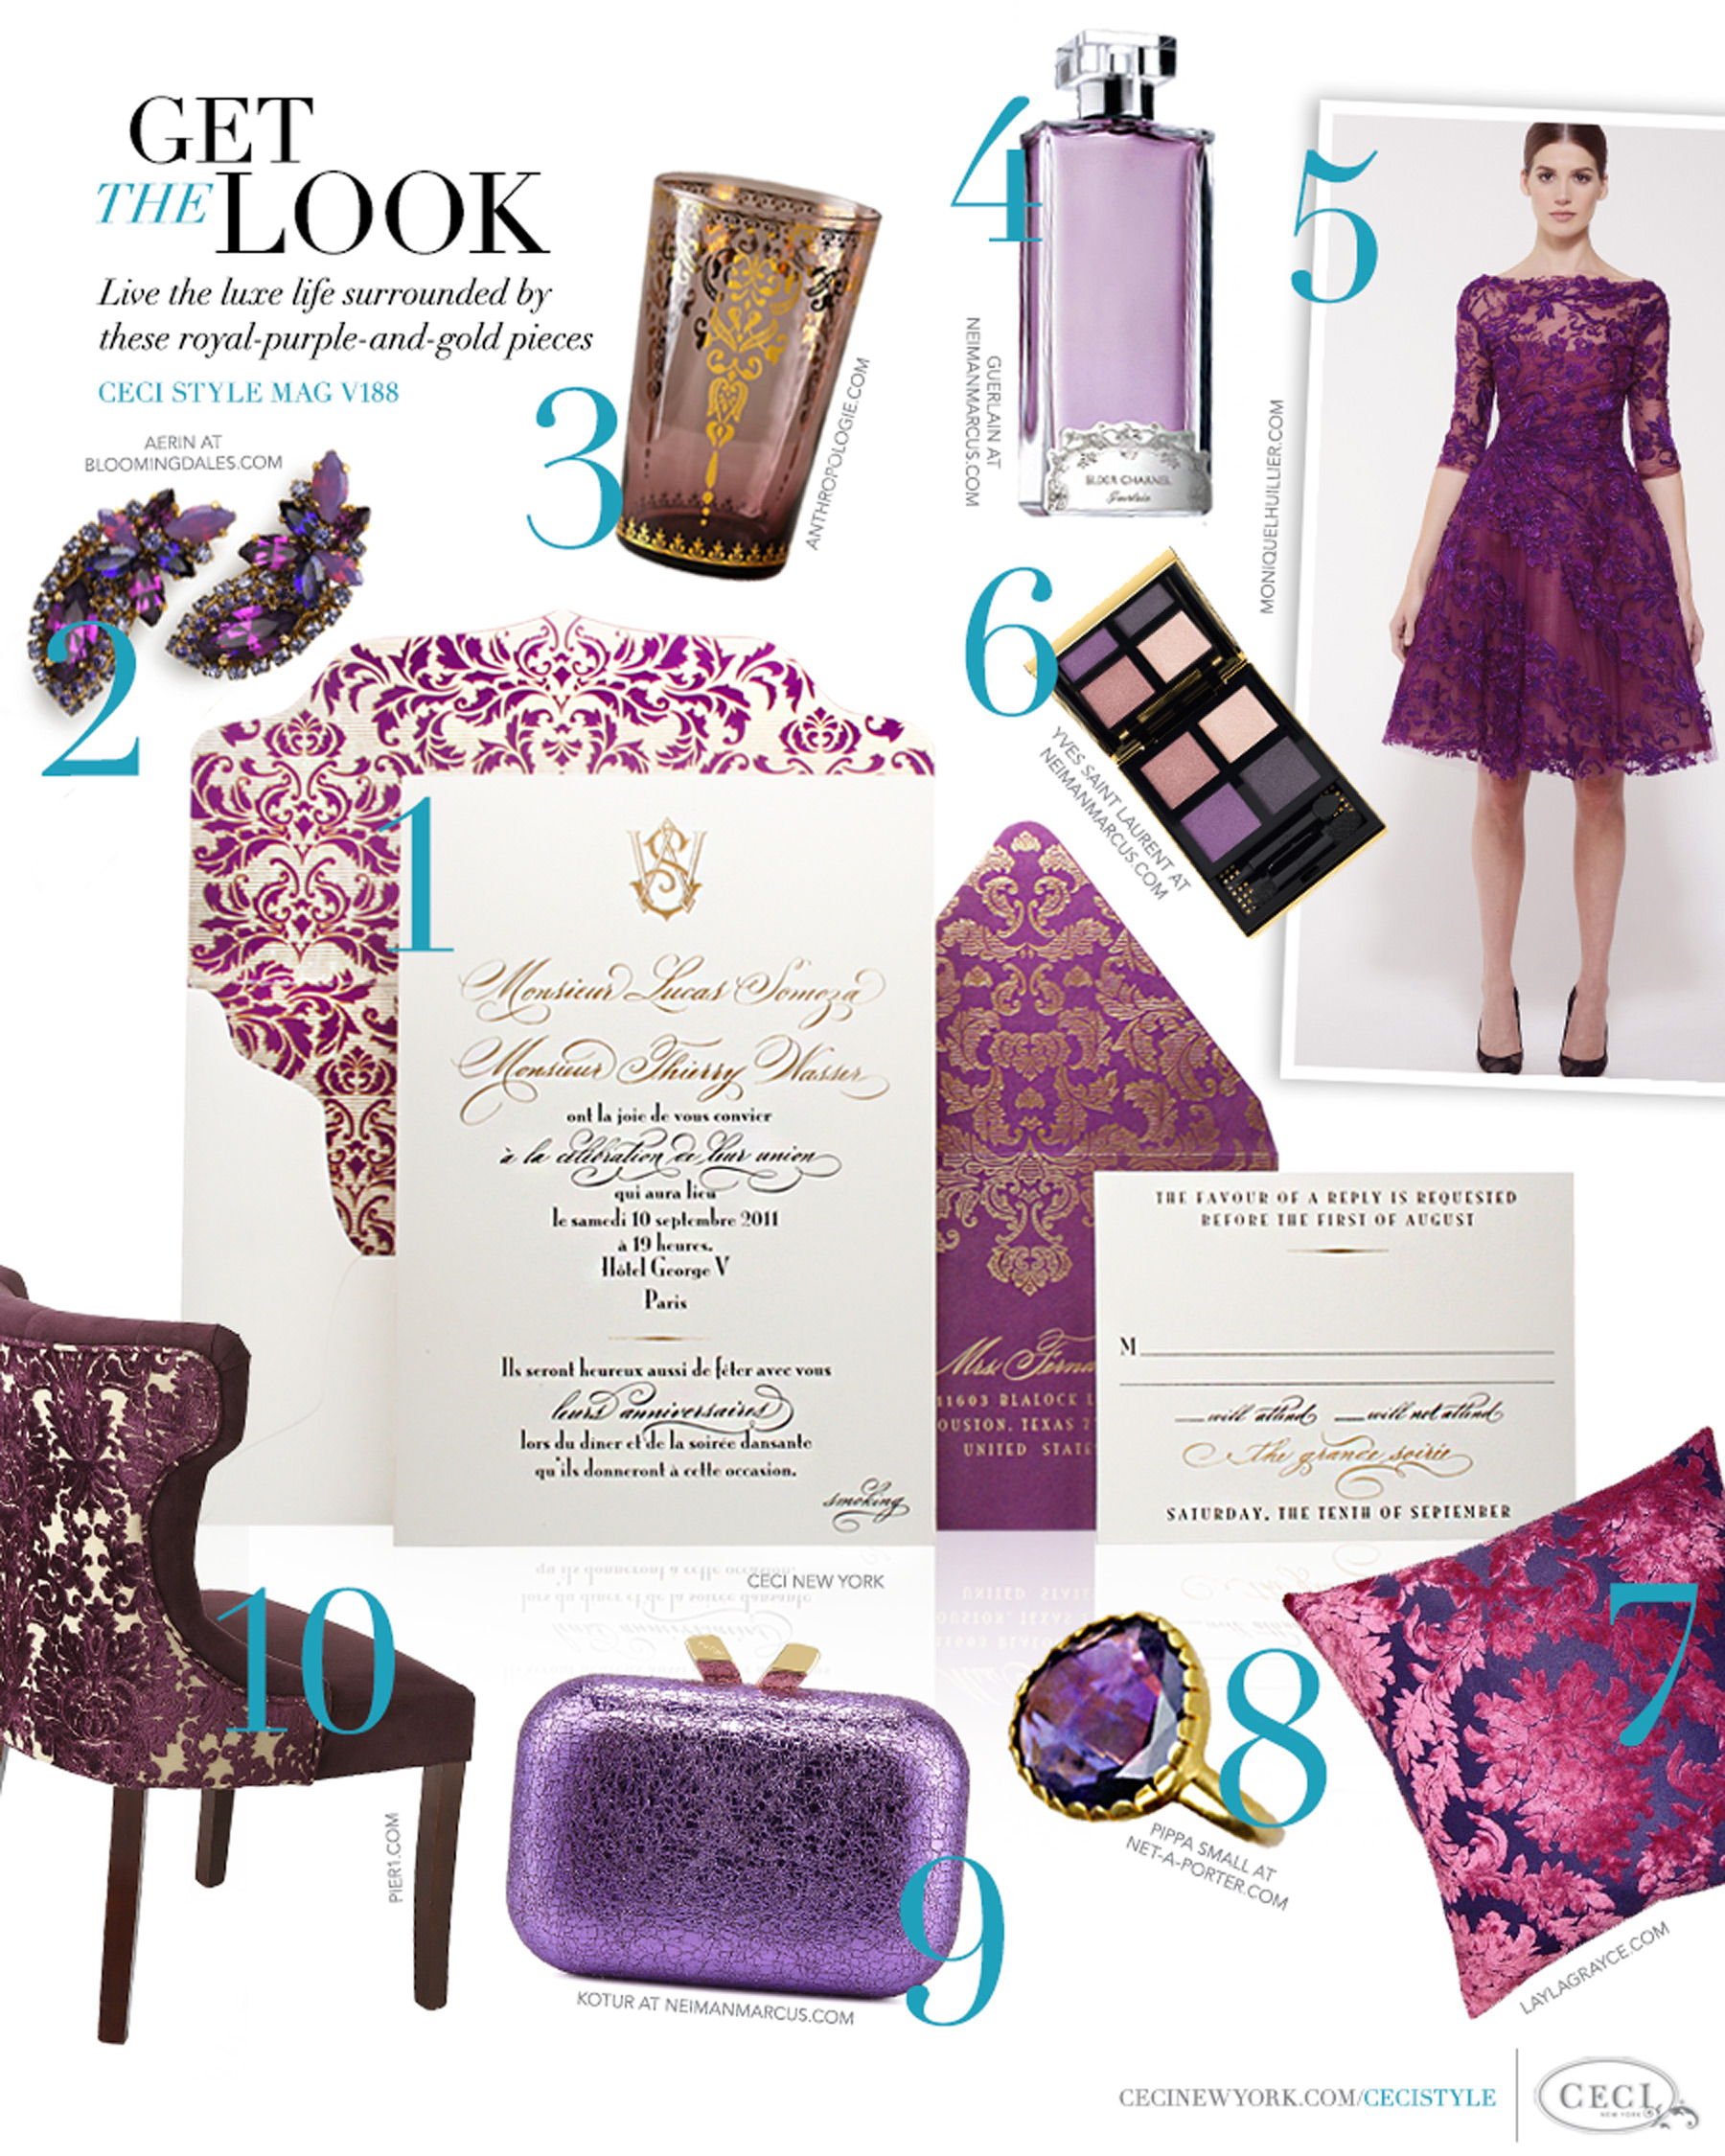 CeciStyle Magazine v188: Get The Look - Purple Reign - Live the luxe life surrounded by these royal-purple-and-gold pieces - Luxury Wedding Invitations by Ceci New York - invitation, ceci new york, aerin, jewelry, home goods, anthropologie.com, moniquelhuiller.com, yves saint laurent, fashion, geurlain, beauty, laylagrayce.com, pippa small, kotur, pier1.com, handbags